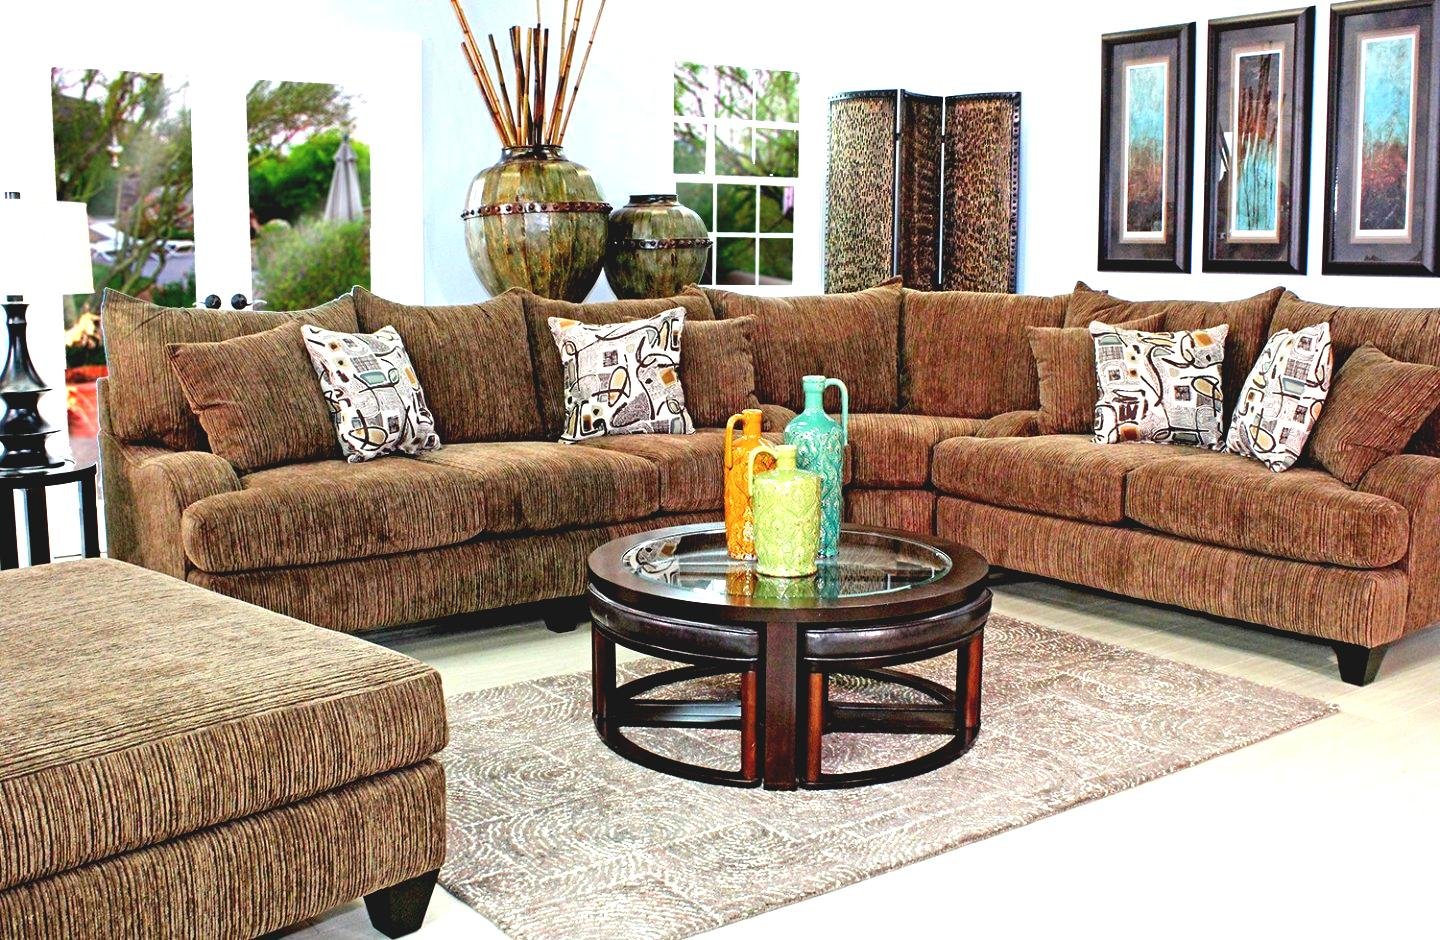 Best Offer For Cheap Living Room Sets Under 500 Homelkcom with regard to 12 Genius Tricks of How to Build Cheap Living Room Set Under 500